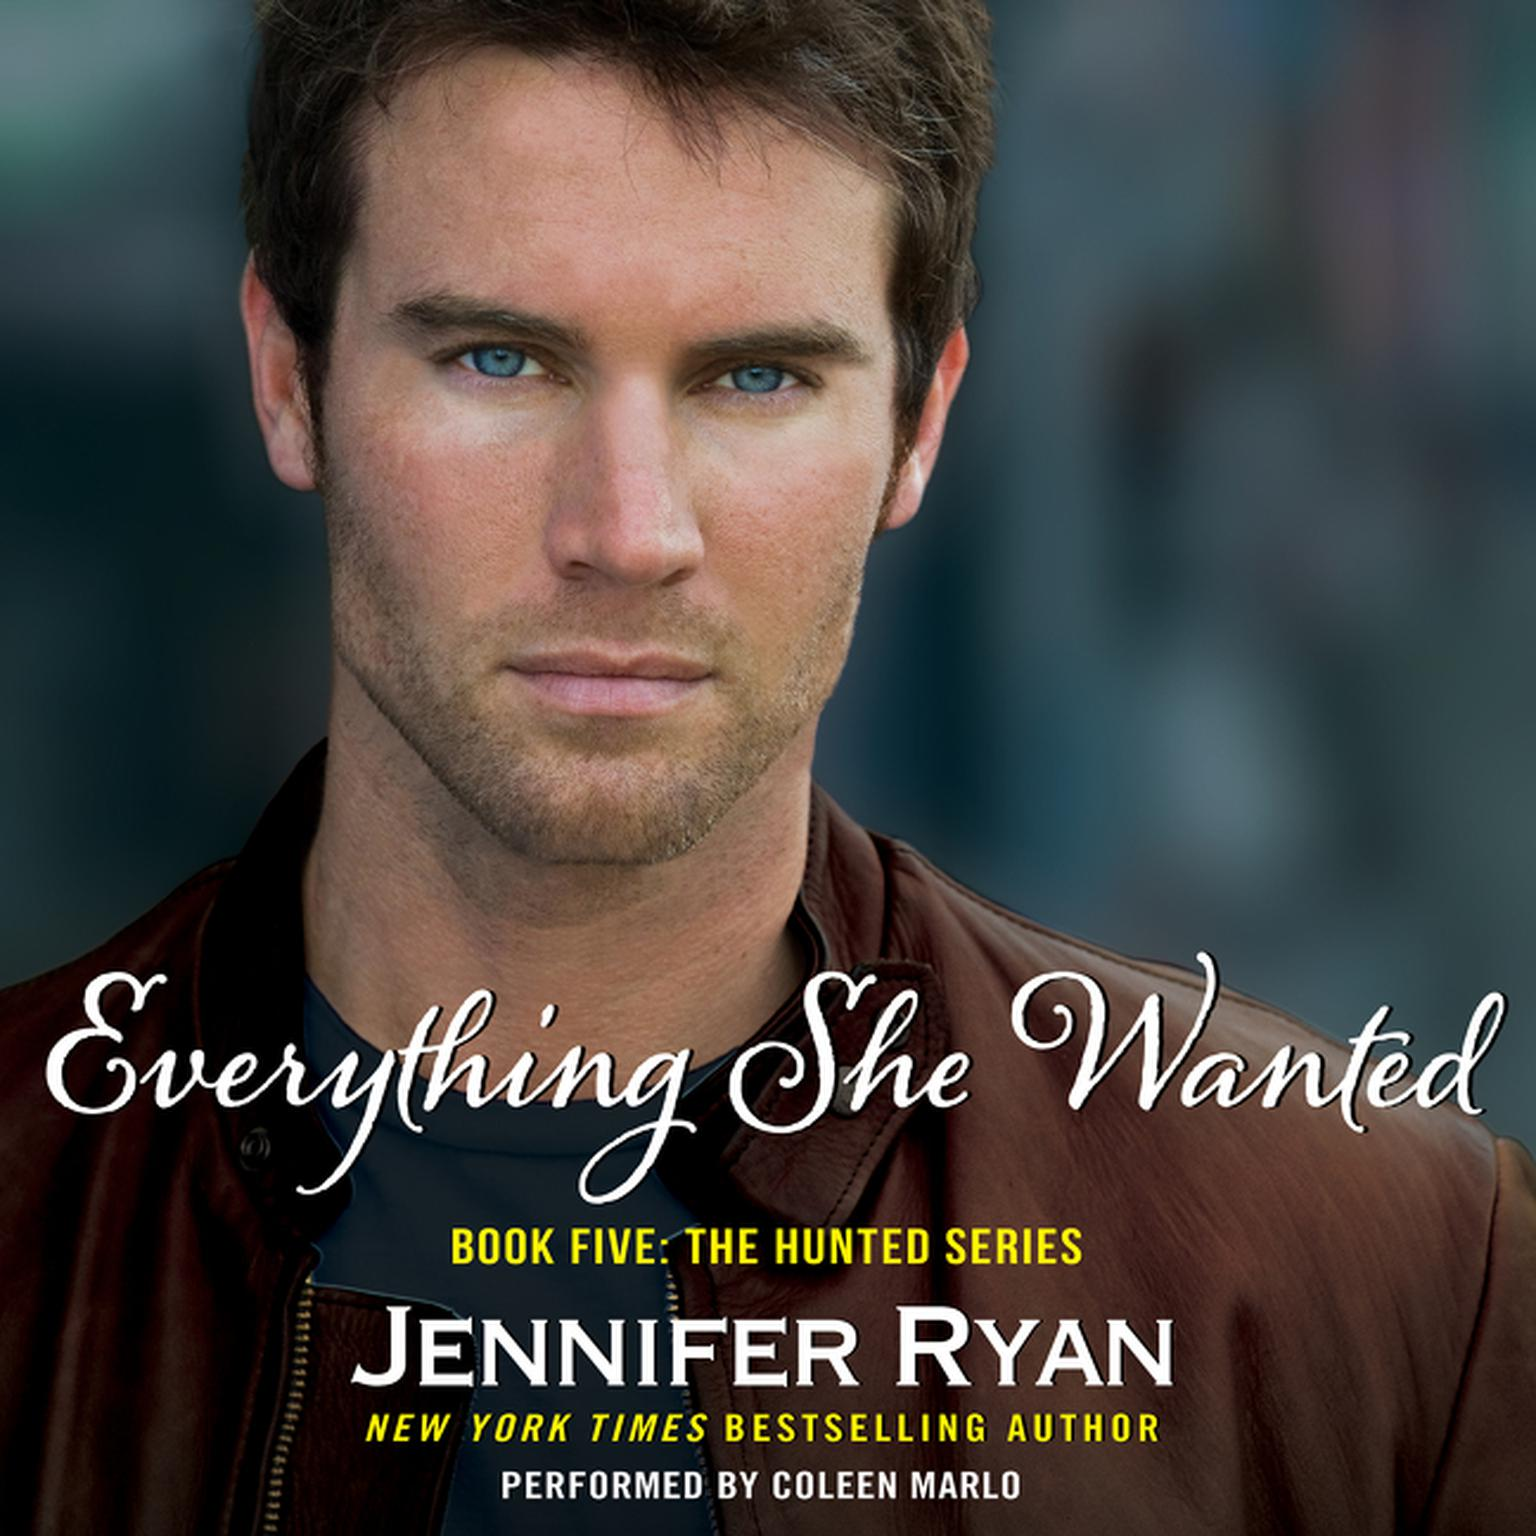 Printable Everything She Wanted: Book Five: The Hunted Series Audiobook Cover Art